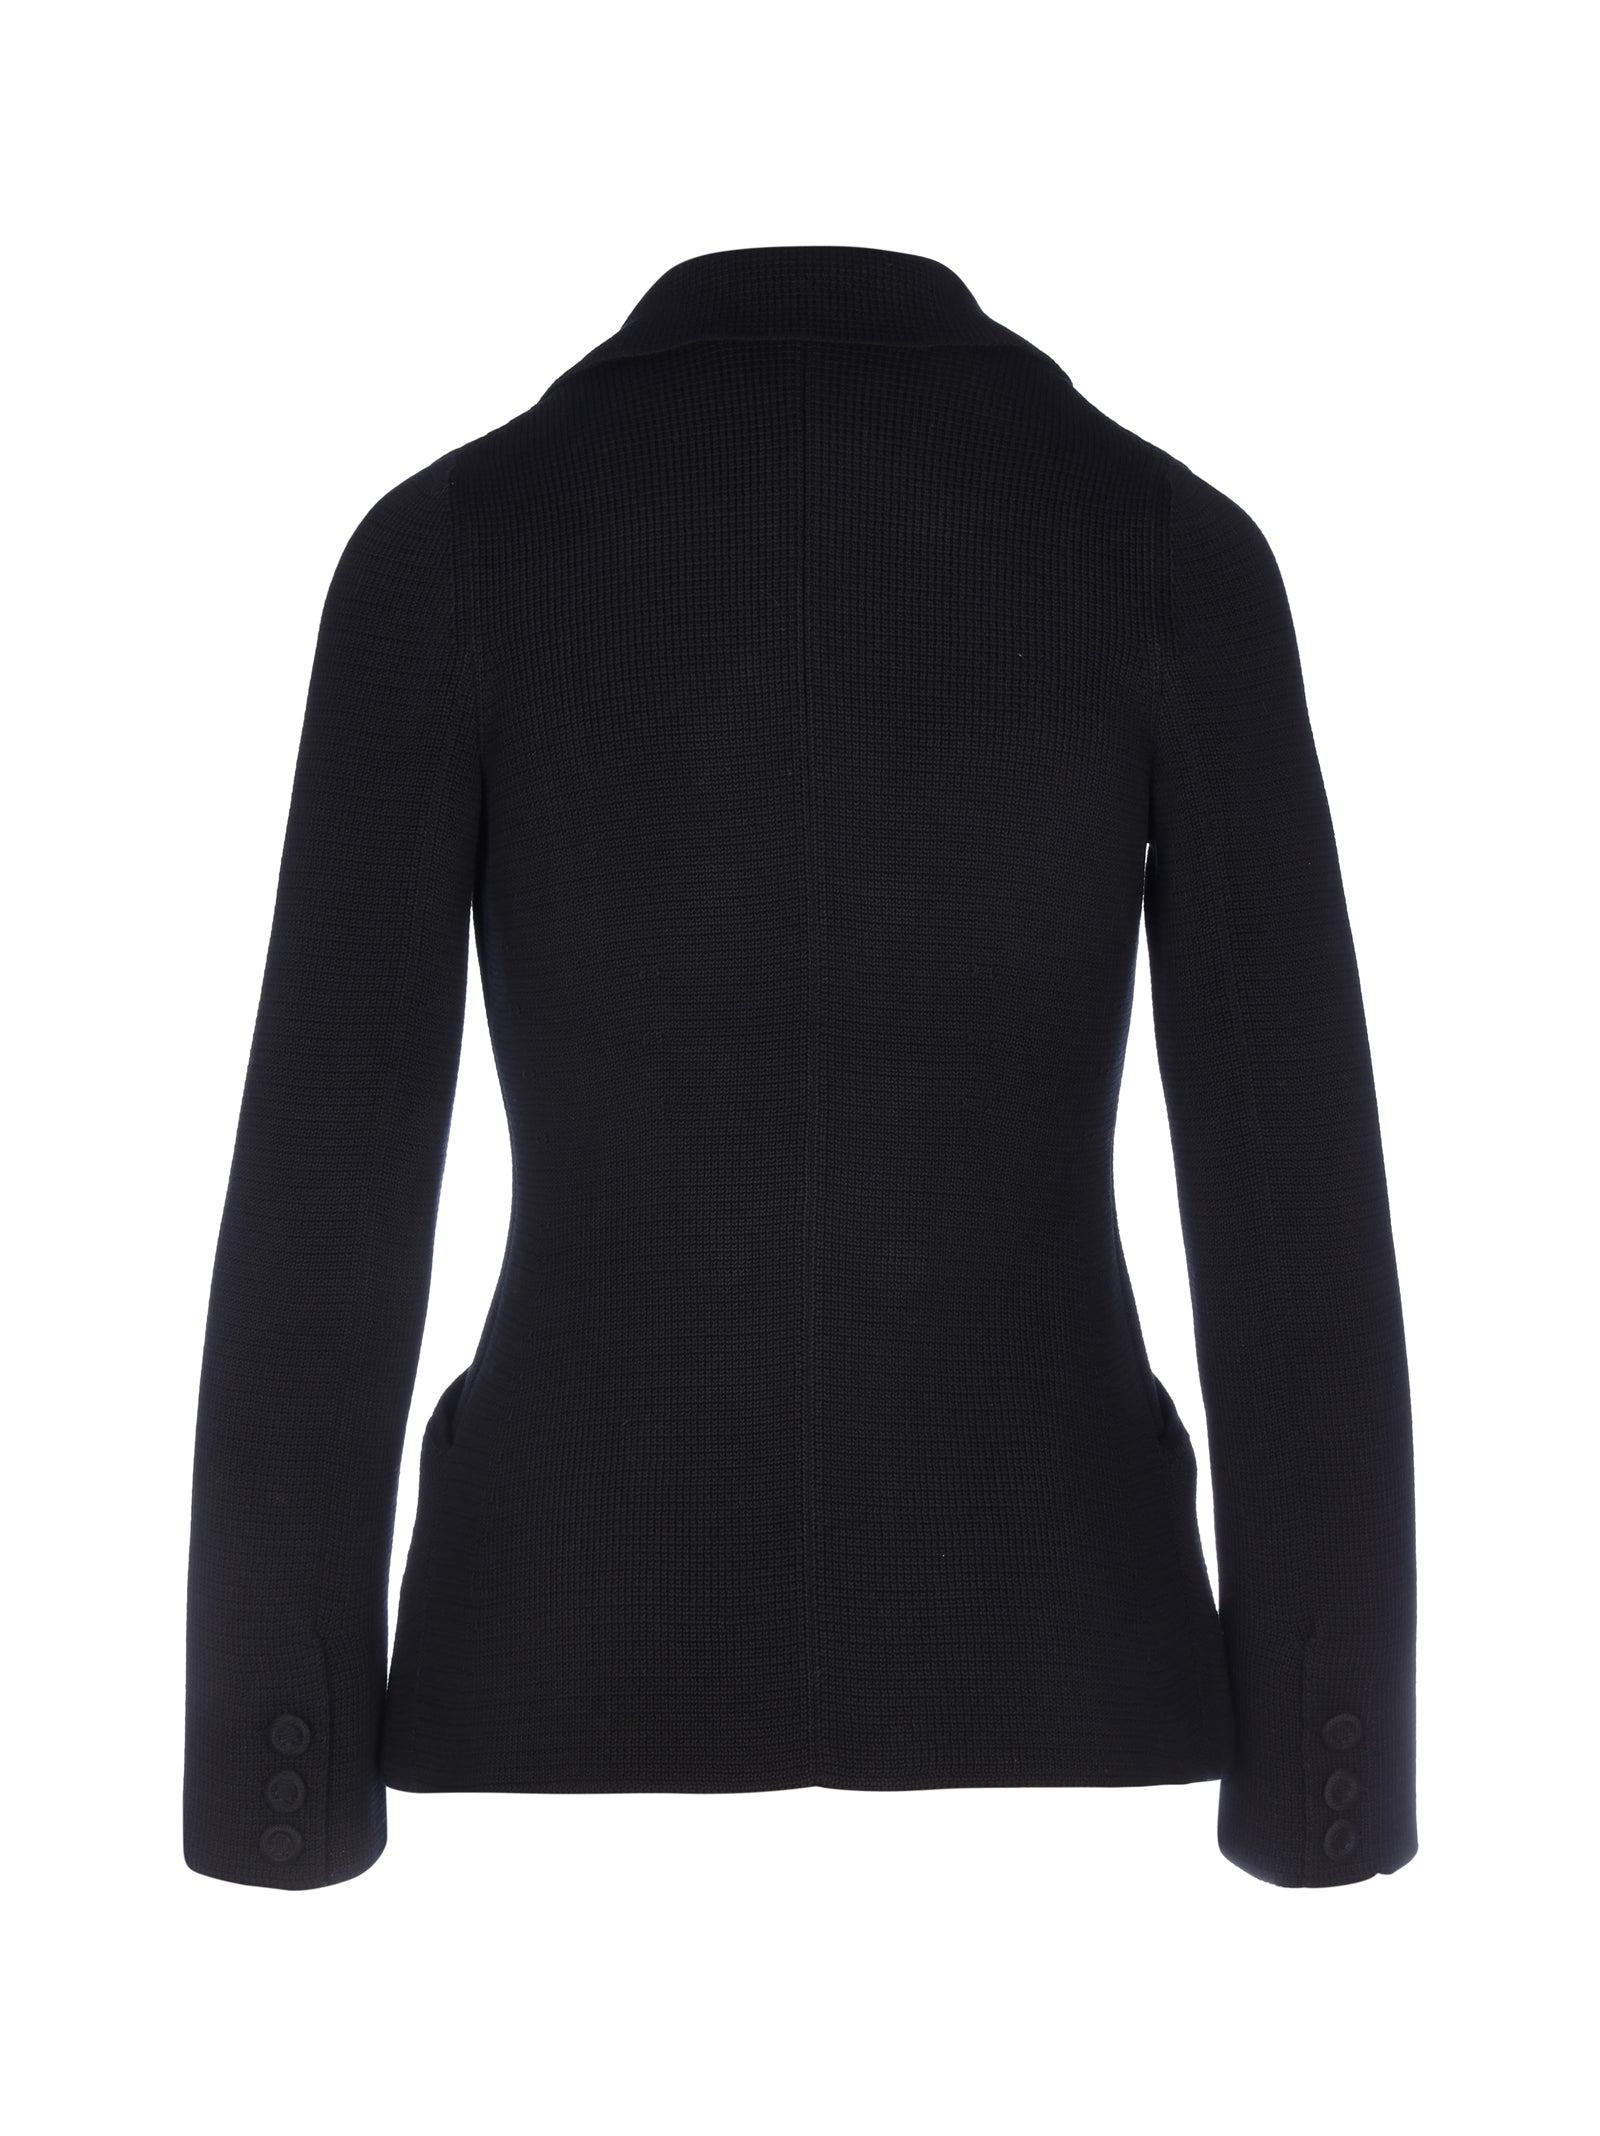 BAR JACKET IN KNITTED FABRIC